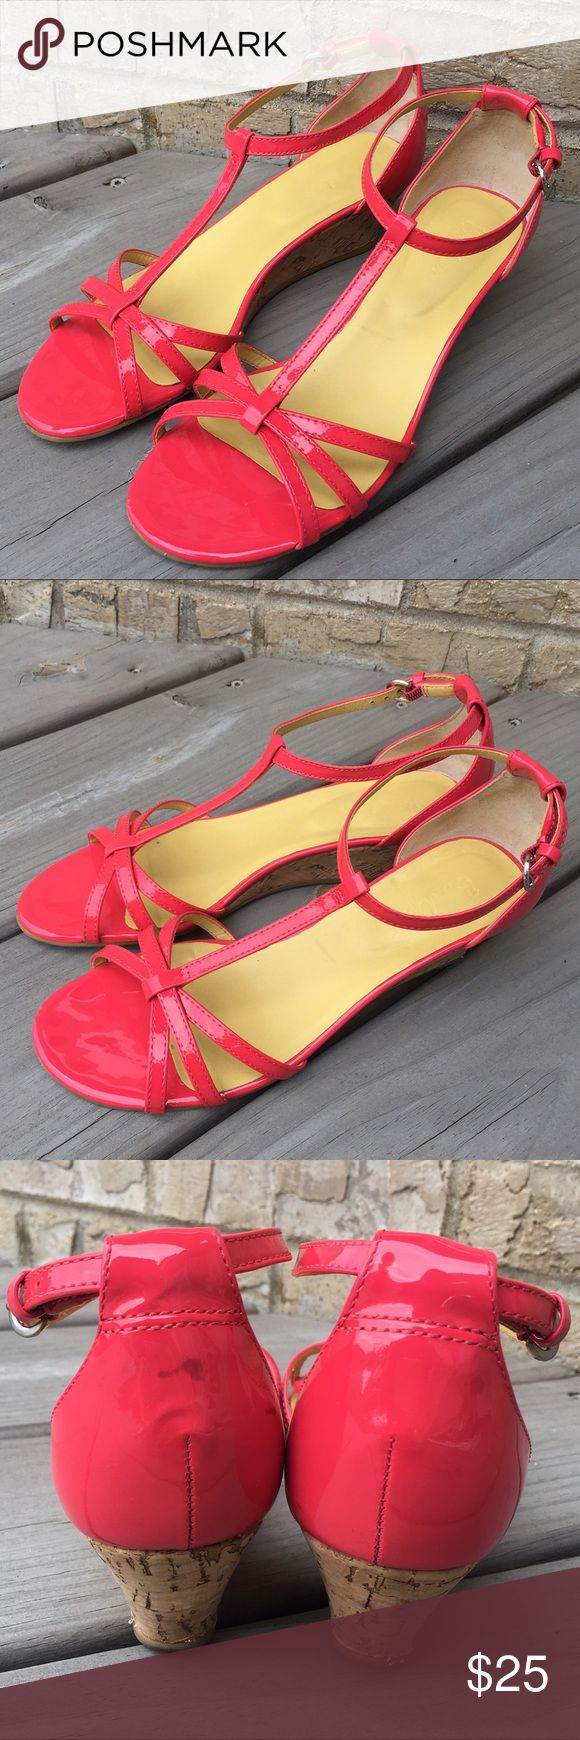 Boden Ht Coral Pink Sandals Wedges 37 Beautiful shoes. Have a few marks, see pictures. Size 37, approximately 6-7. Happy poshing! Boden Shoes Sandals